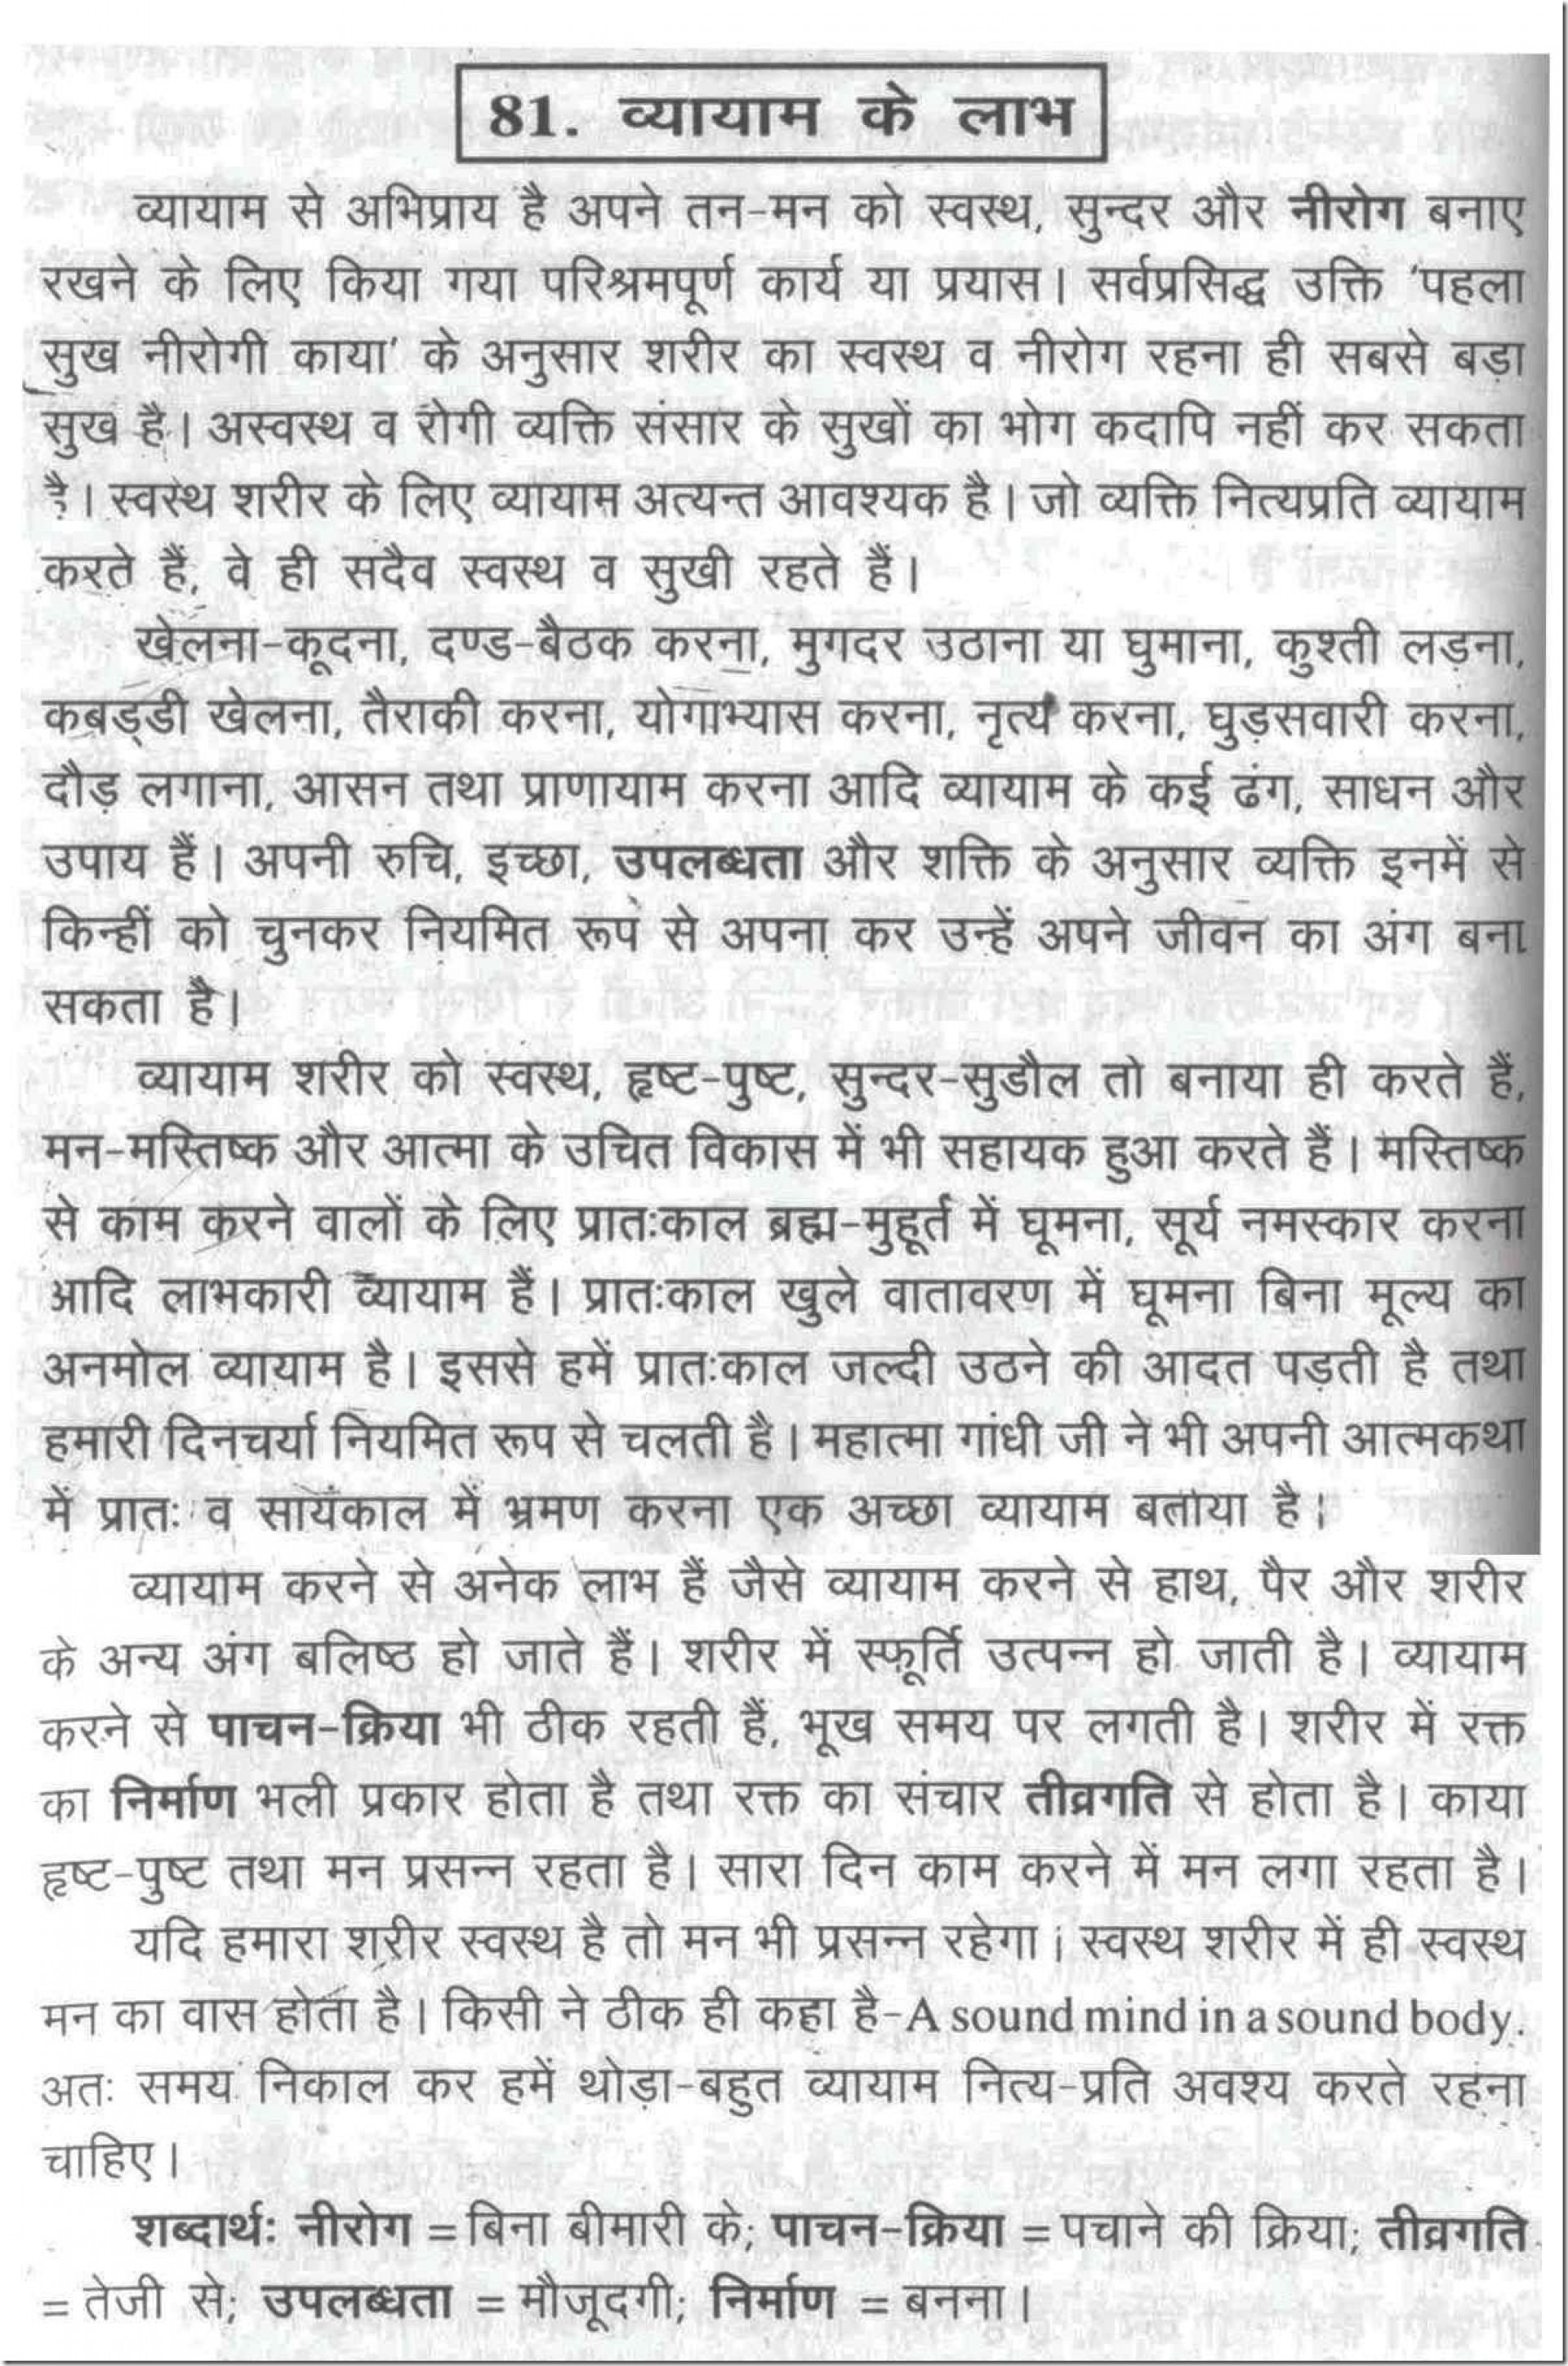 011 2563478896 Essay On Health And Fitness Through Food Good Habits In Hindi Exceptional Bad Healthy Eating 1920